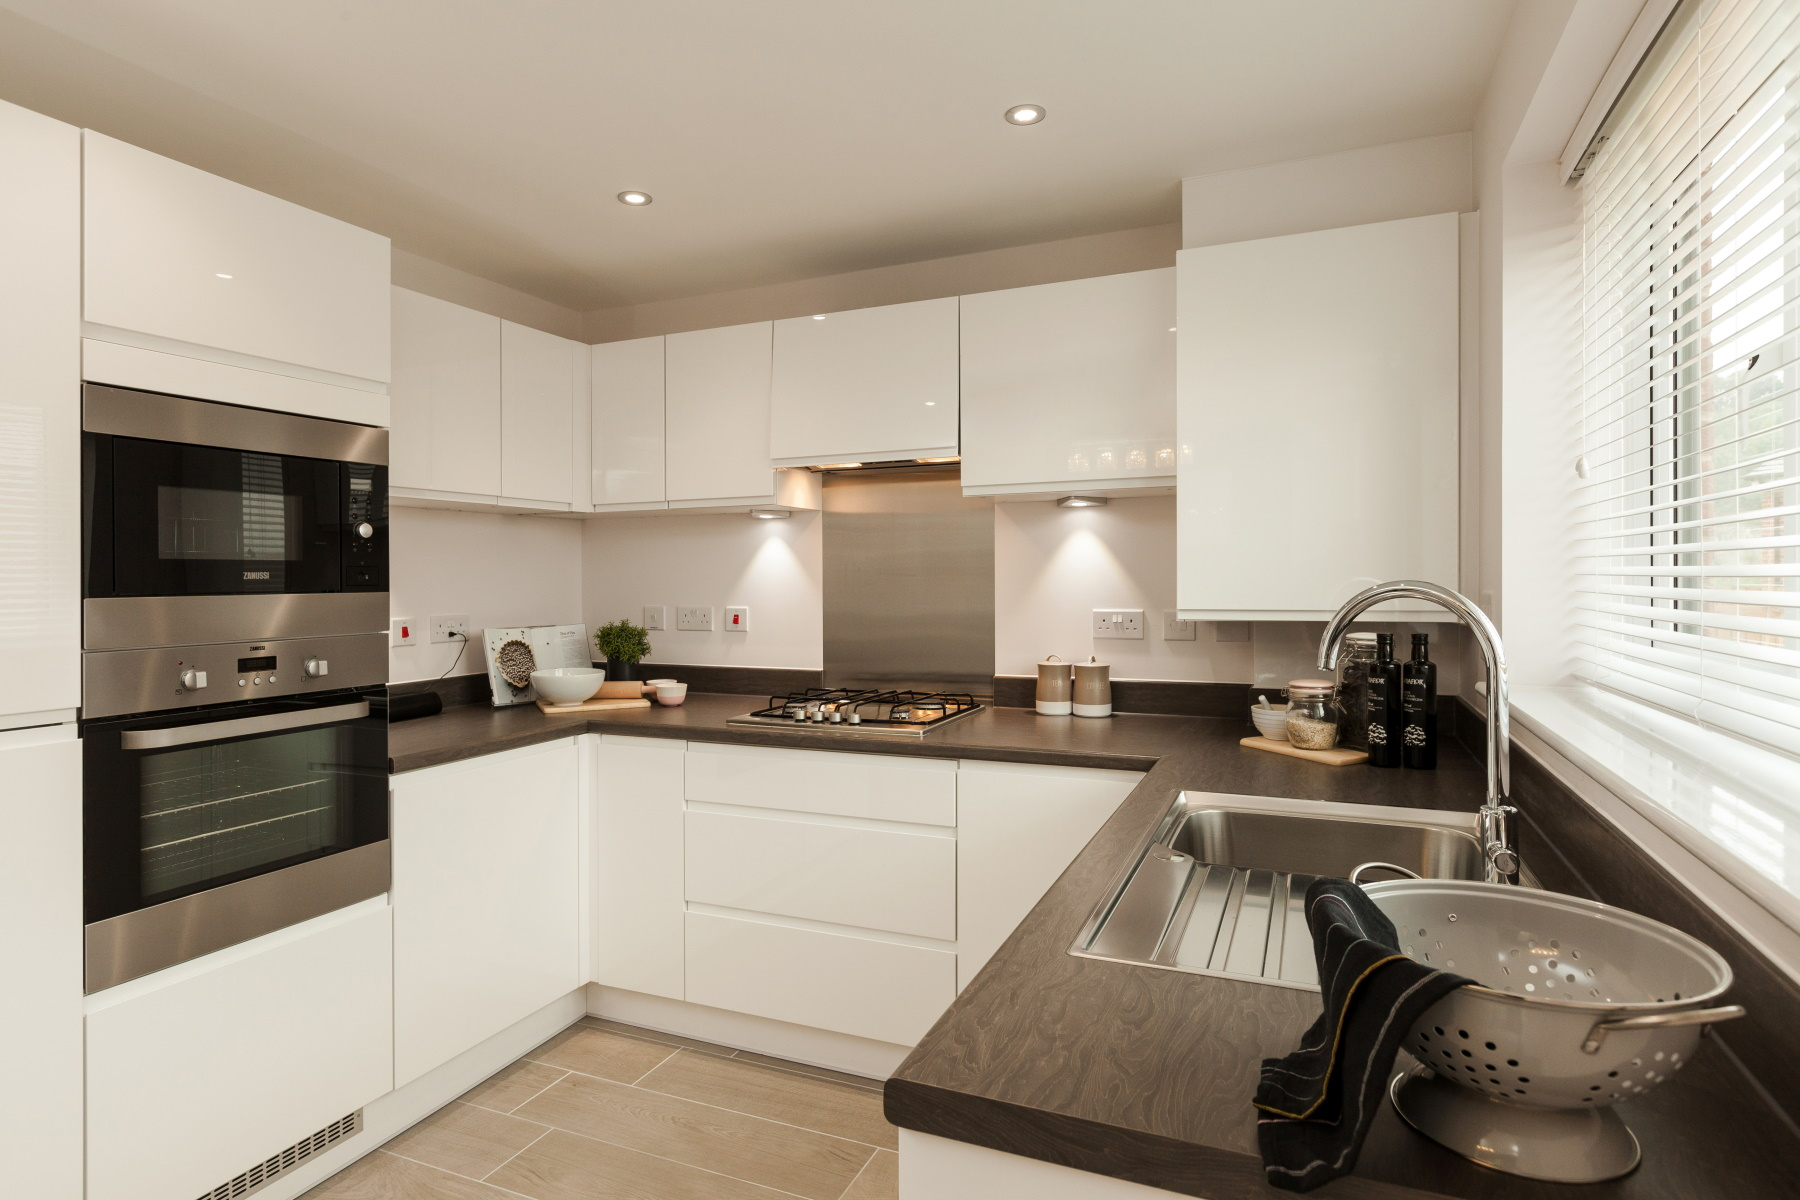 TW Exeter - Riverside Walk - Byford example kitchen